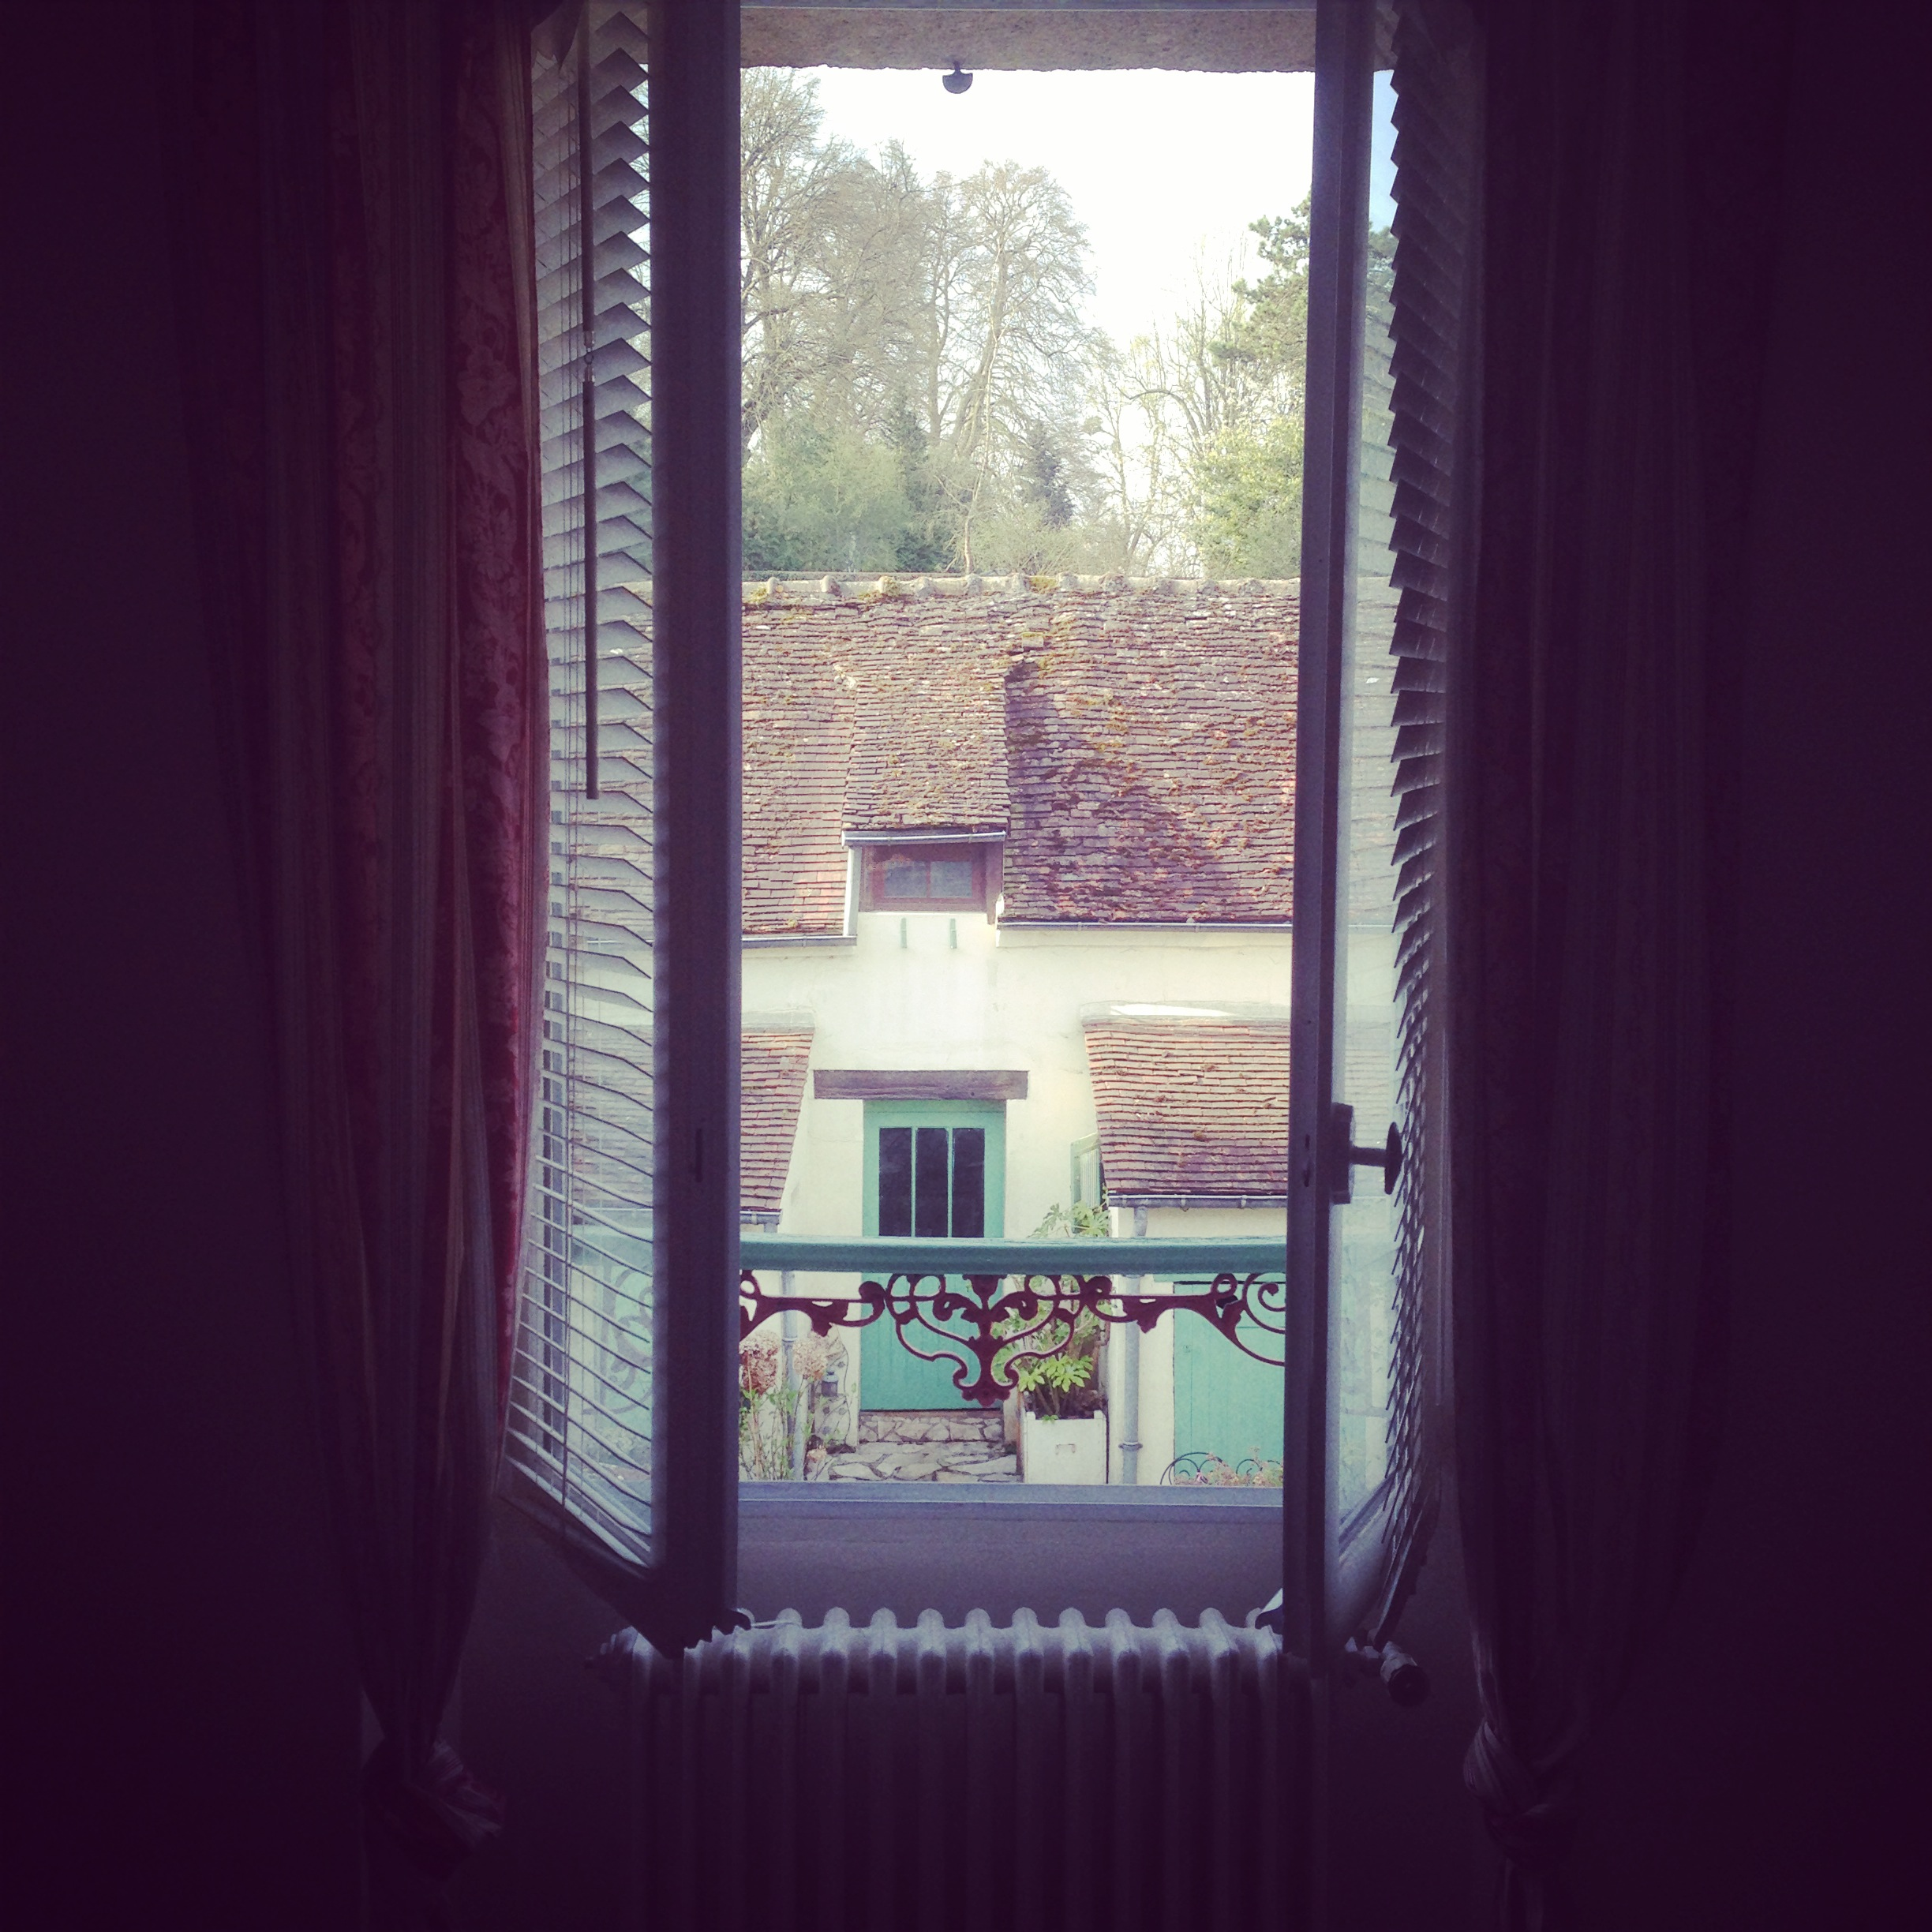 The view from my bedroom